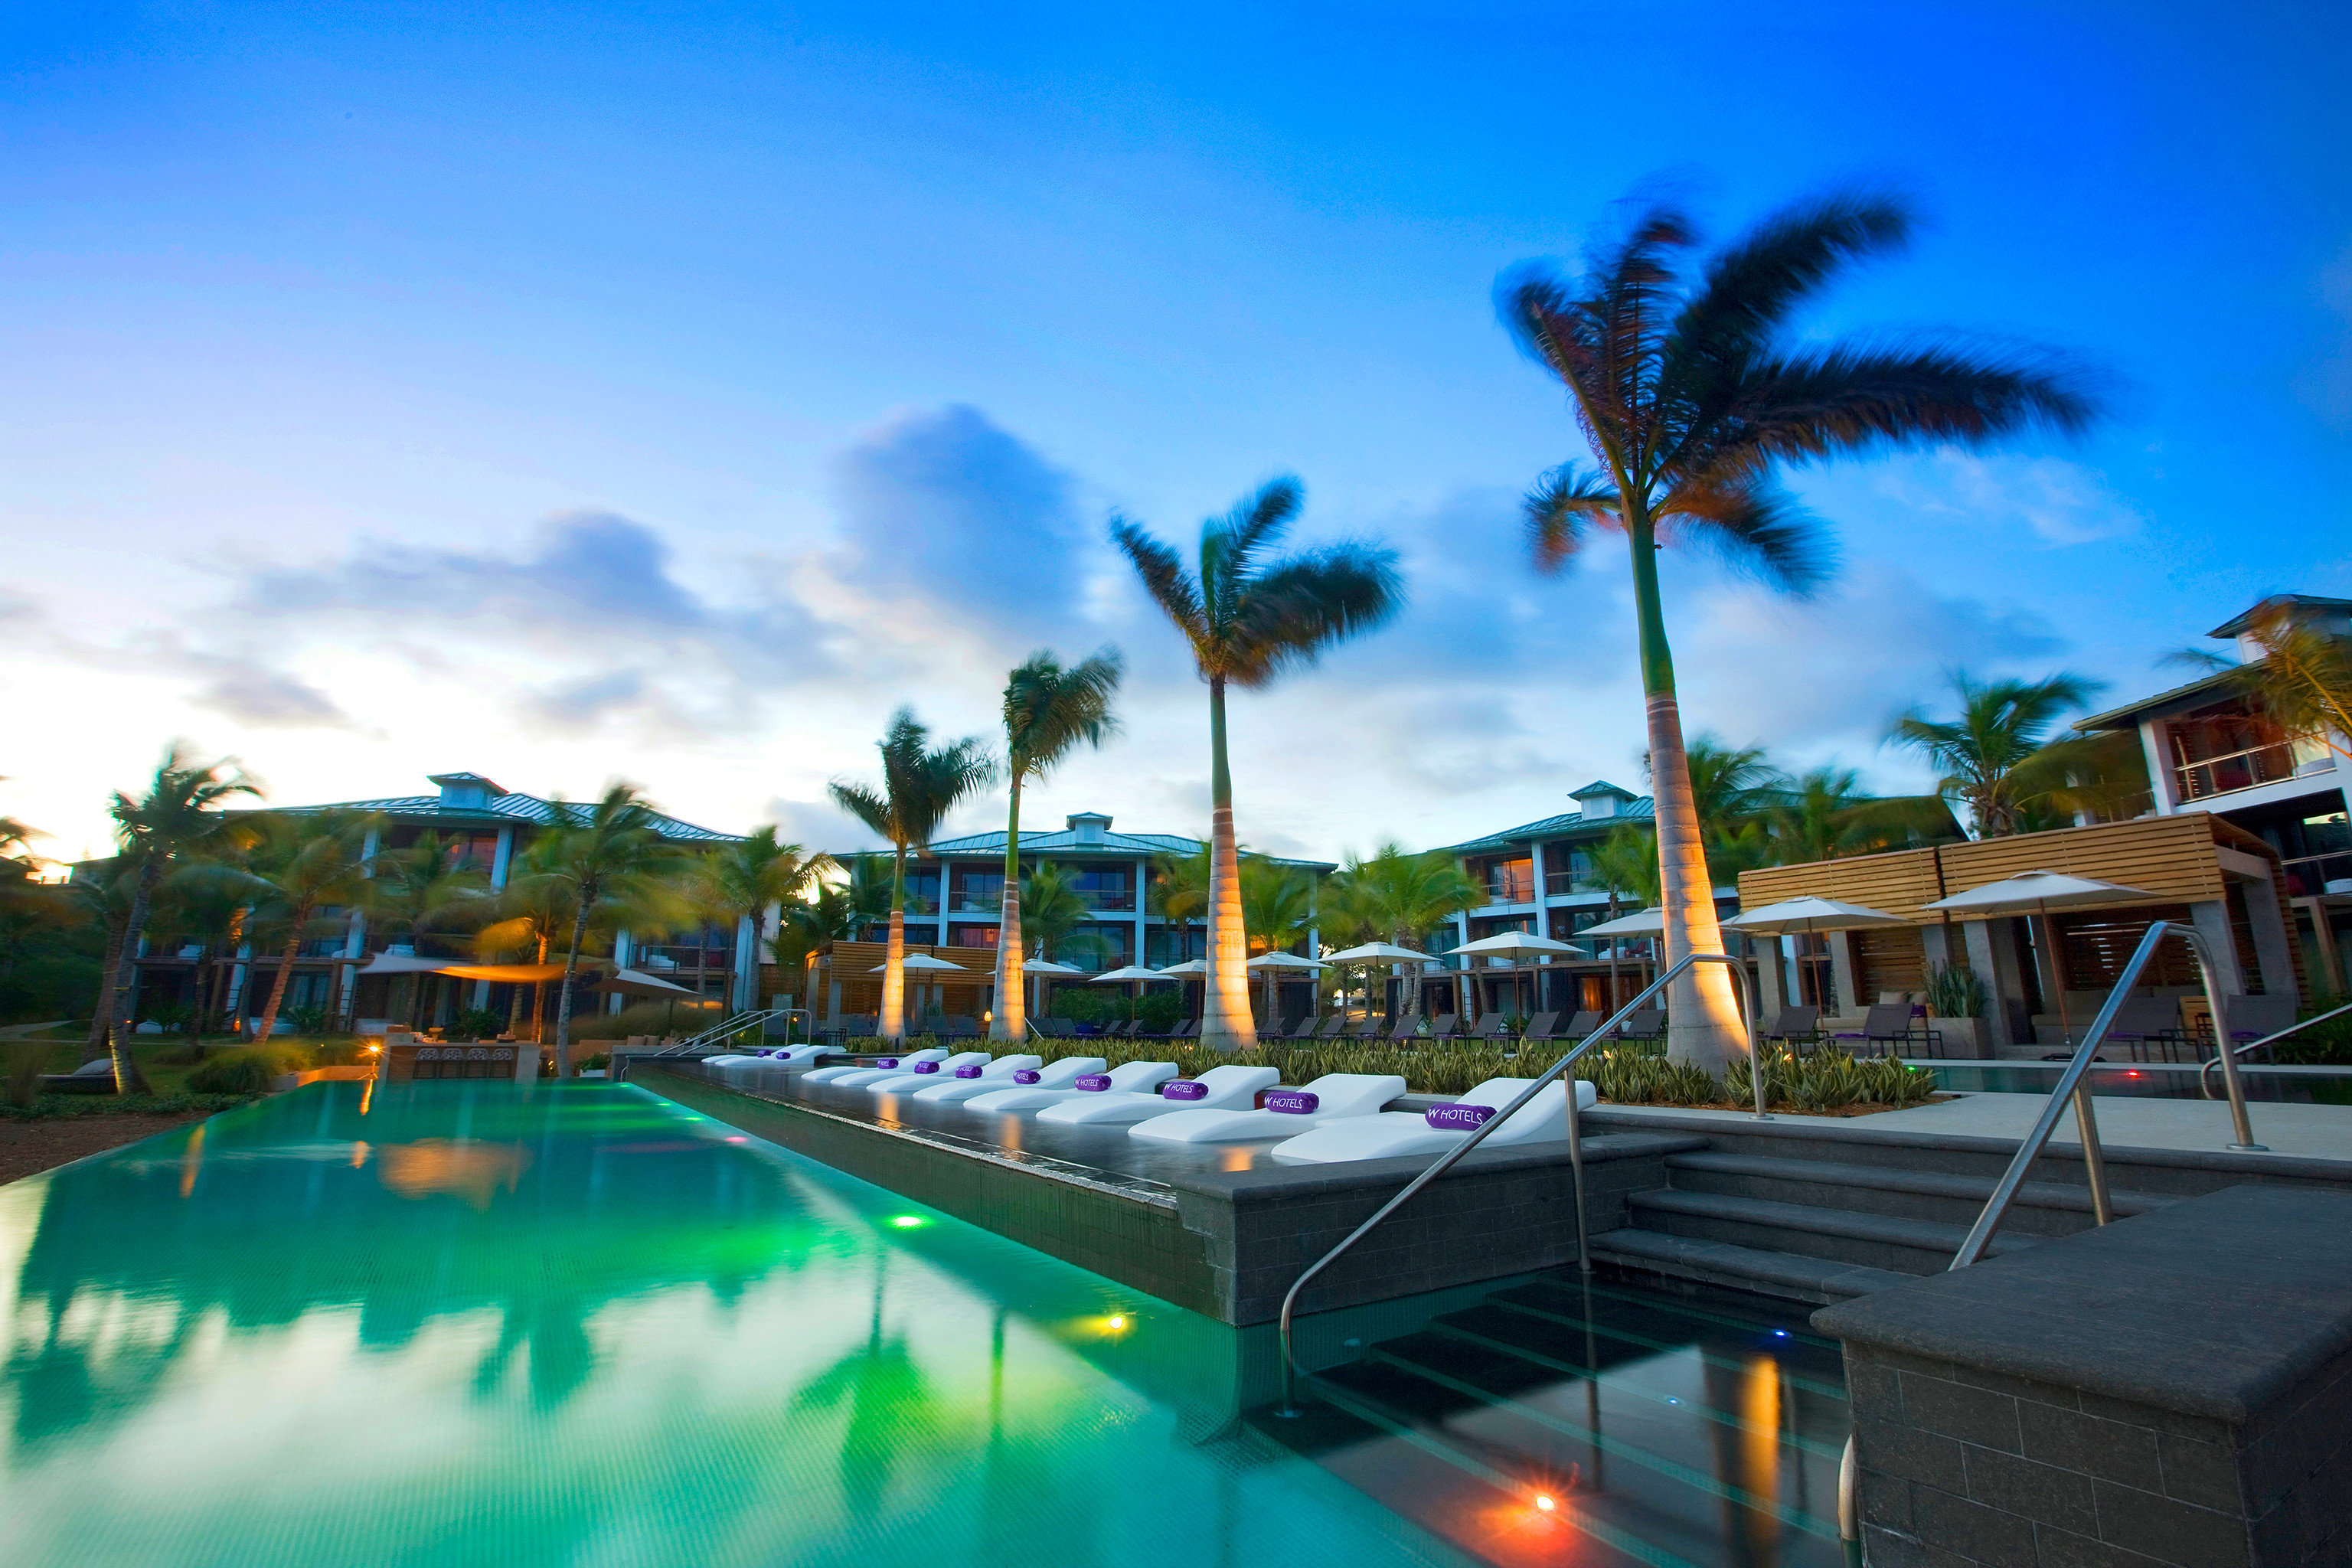 Exterior Hotels Nightlife Play Pool Resort sky outdoor leisure swimming pool vacation marina palm Water park estate Beach amusement park dock condominium park colorful lined